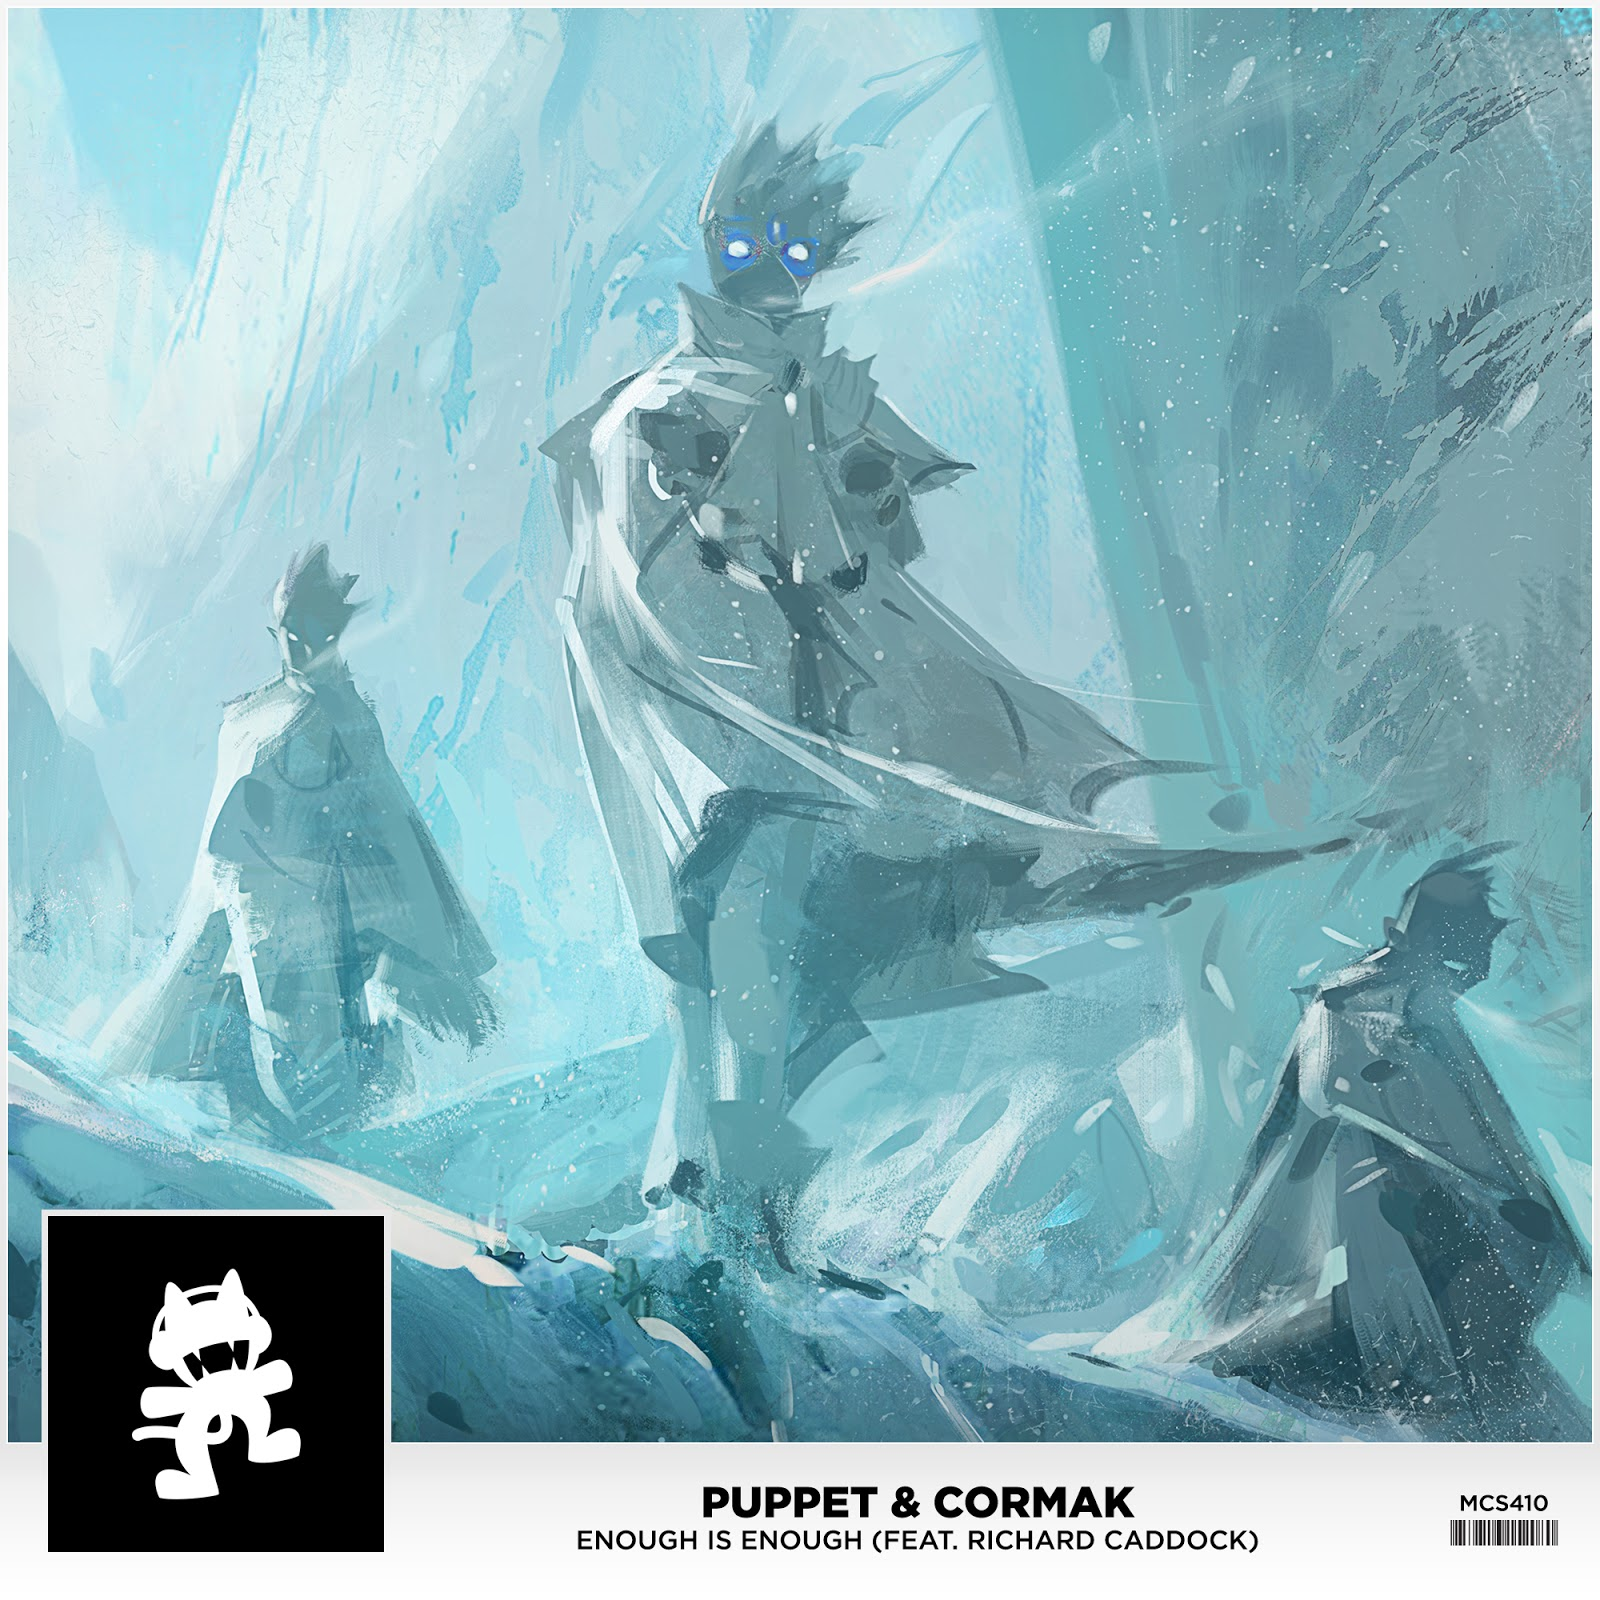 Puppet & Cormak - Enough is Enough (feat. Richard Caddock) (Art)